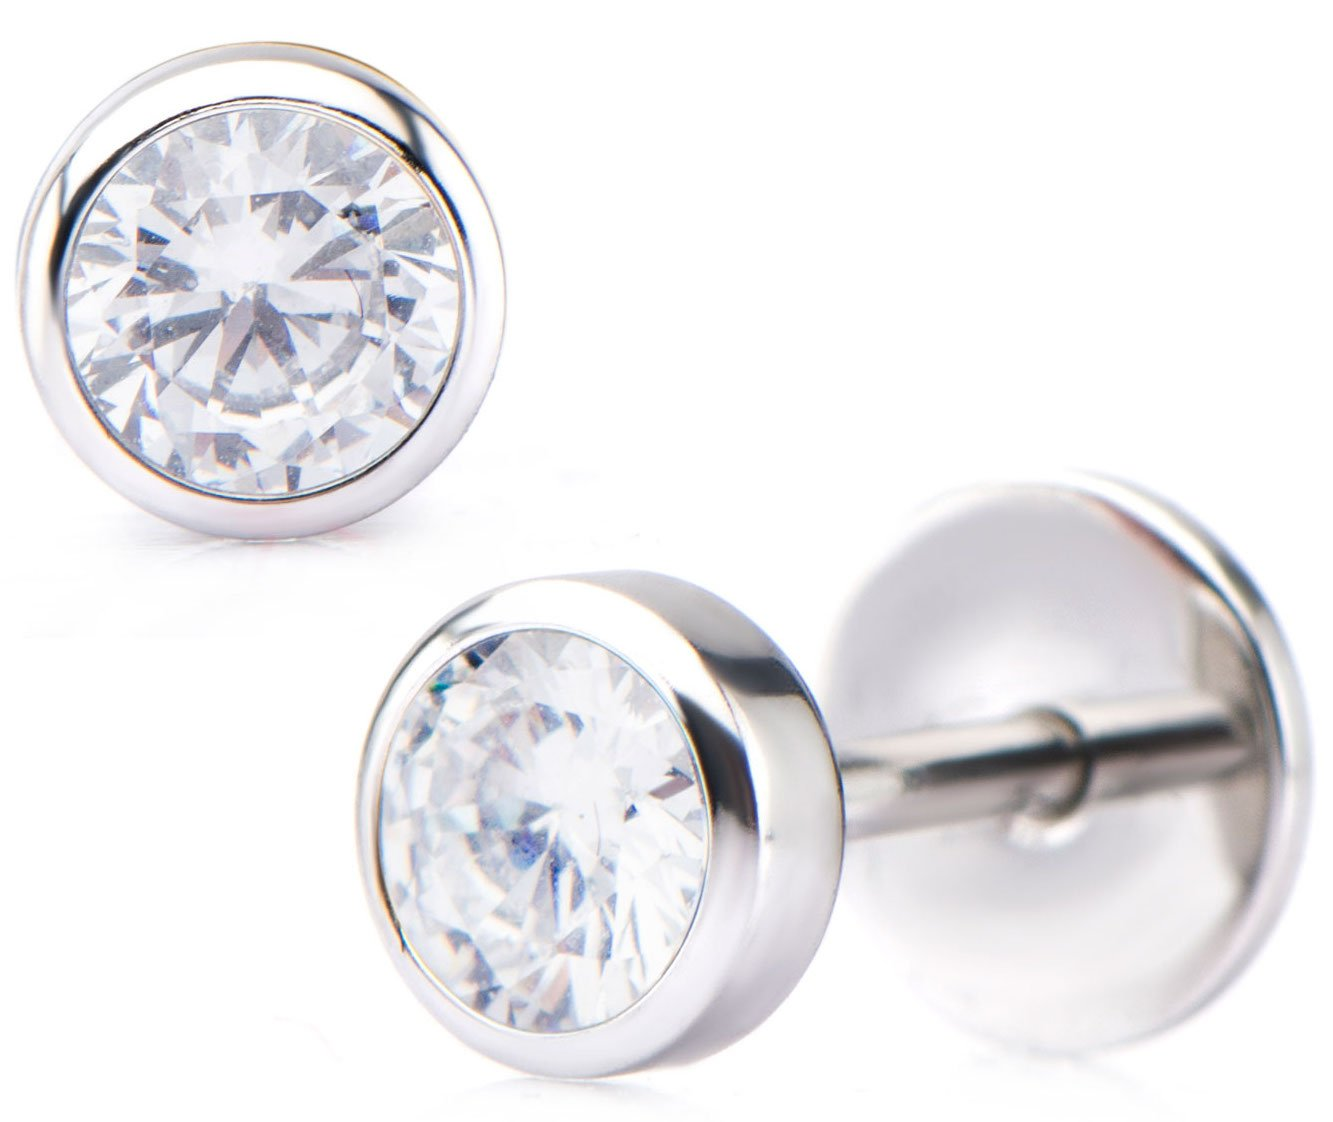 ComfyEarrings CZ Crystal Bezel Stud Earrings by ComfyEarrings (Image #1)